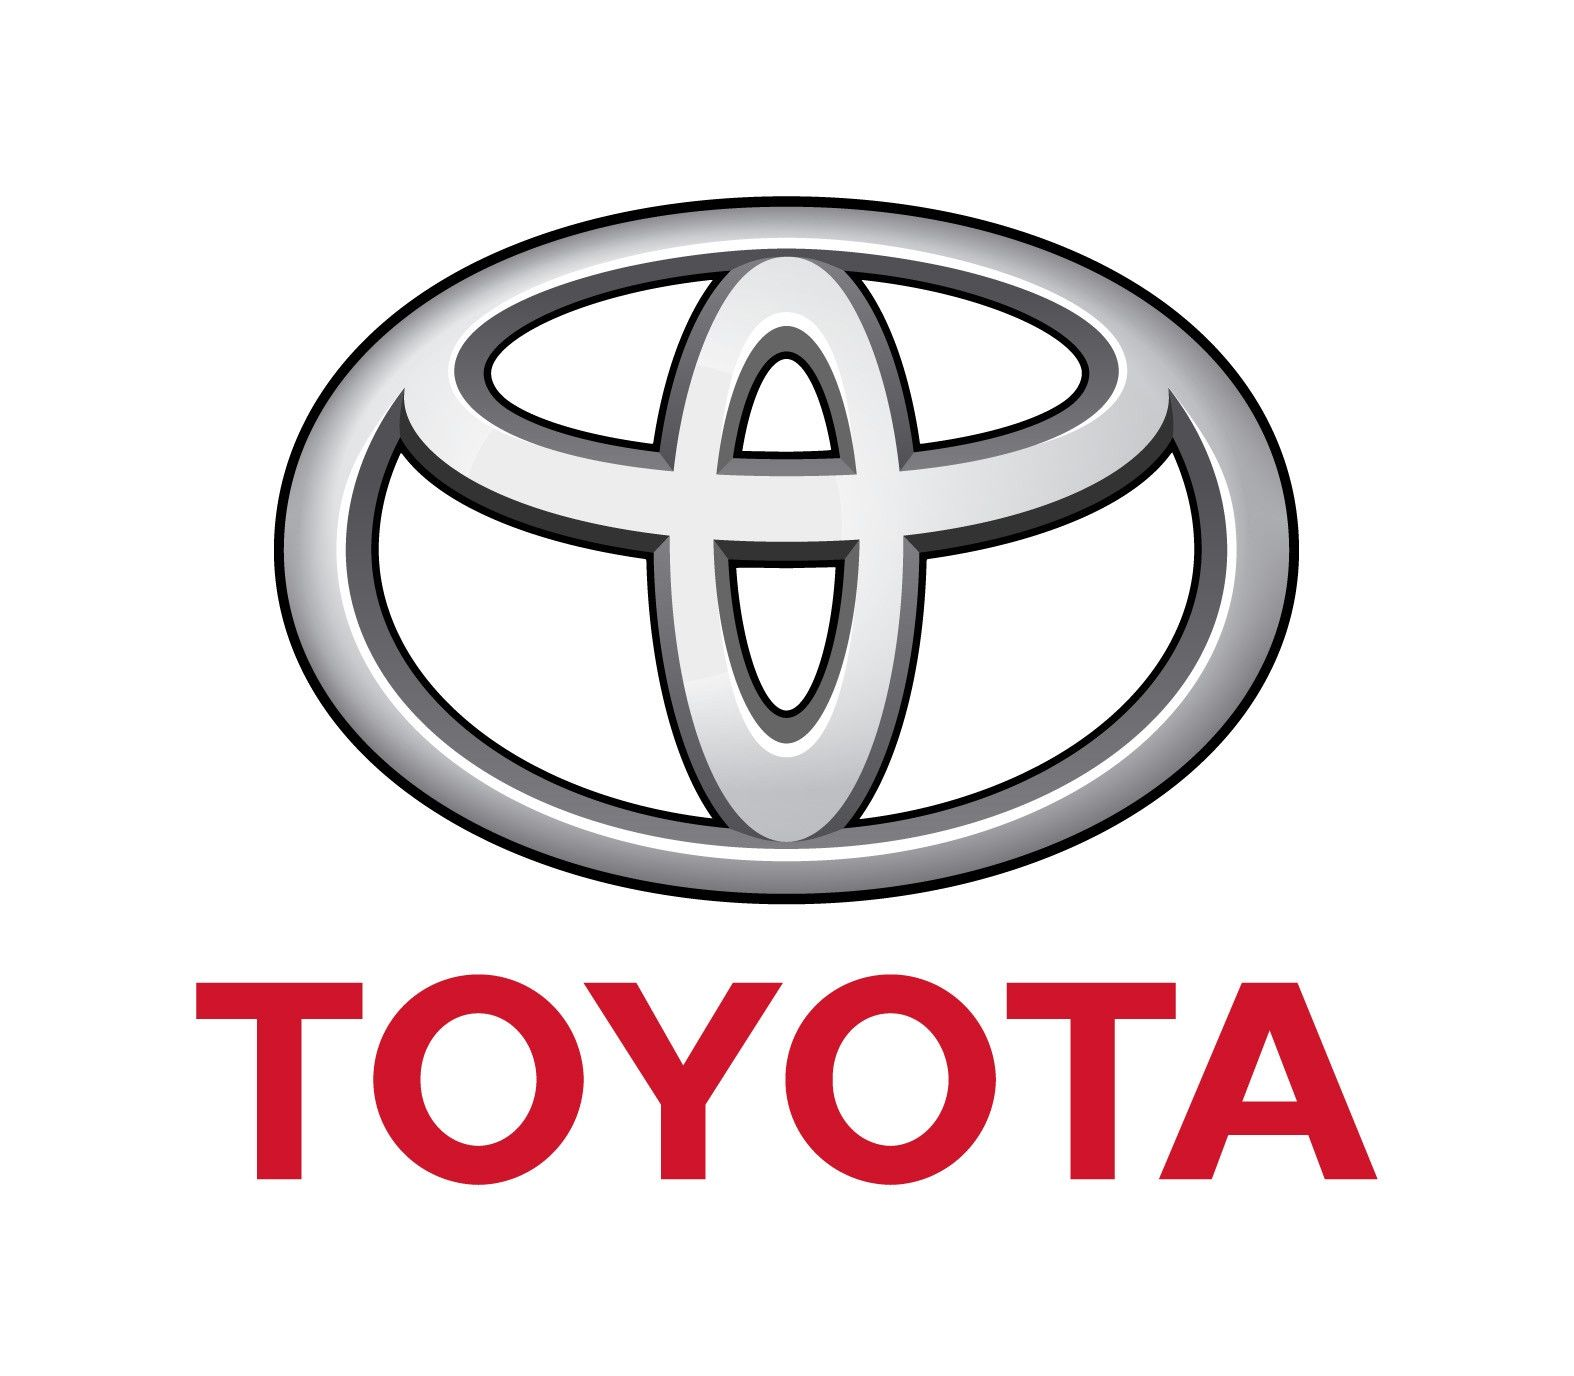 Toyota Cars for sale used and new in Abu Dhabi